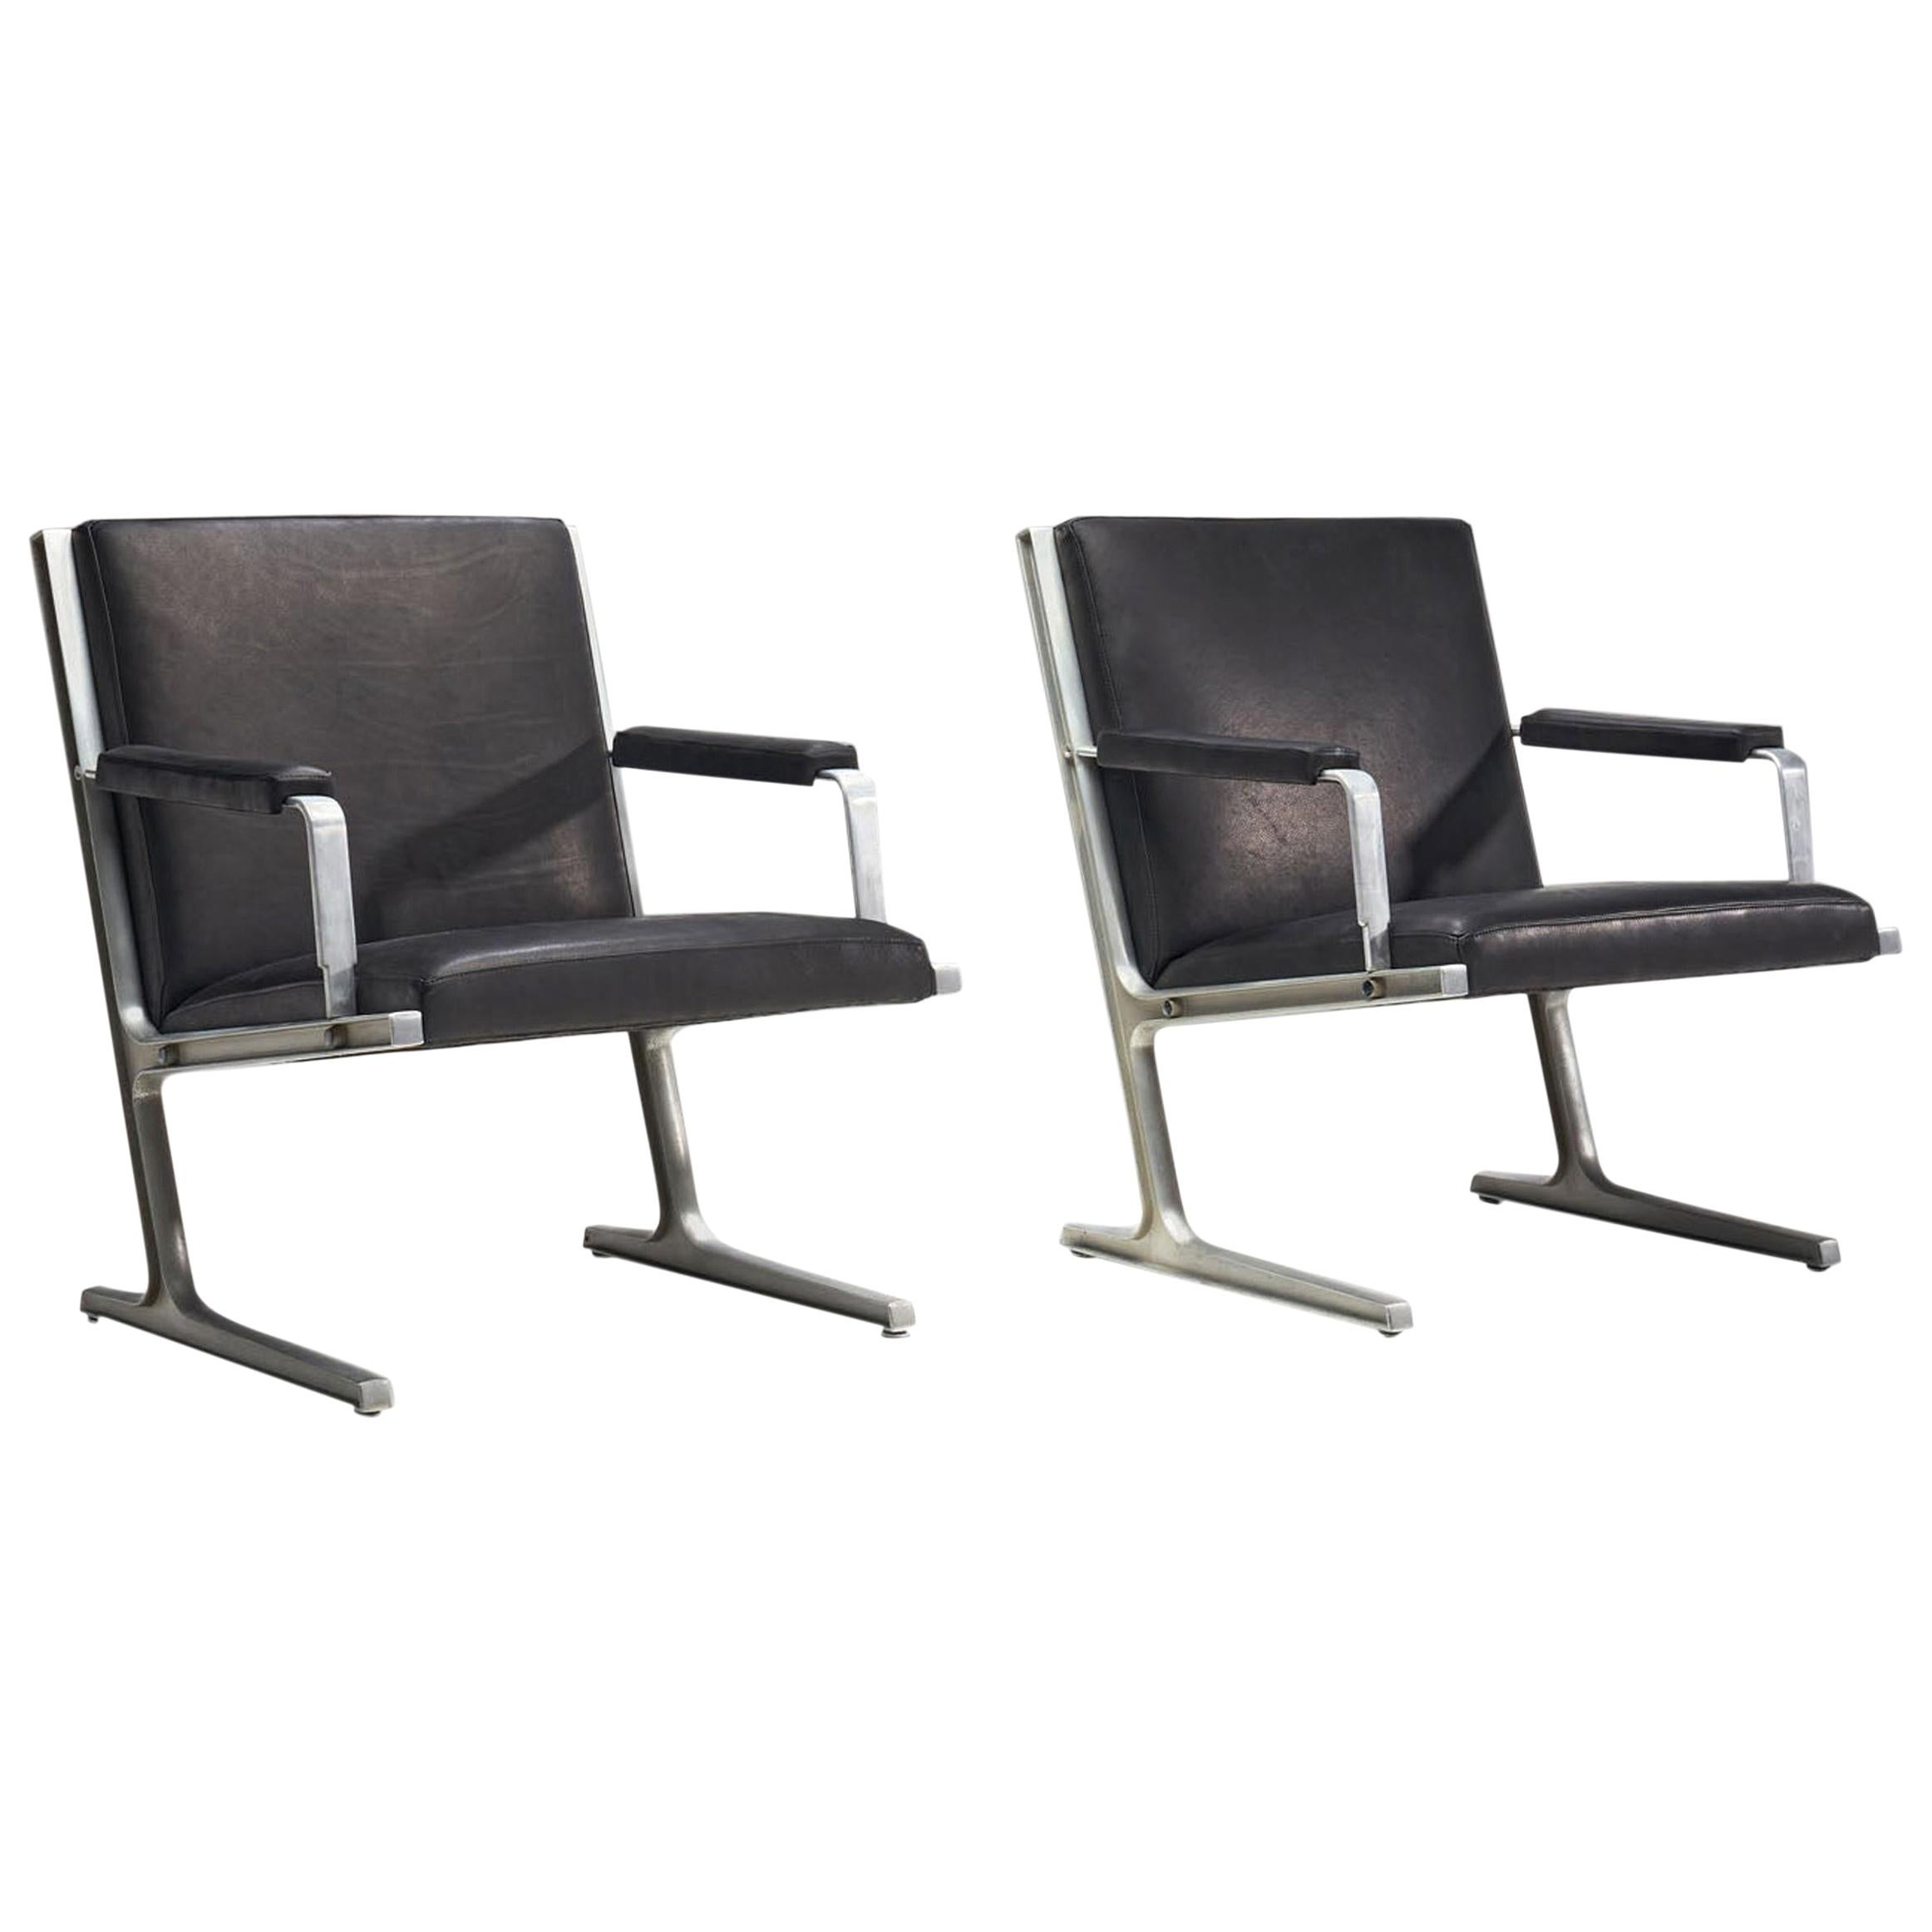 """Pair of """"Lufthavns Stole"""" Chairs by Ditte Heath and Adrian Heath for Cado, Den"""